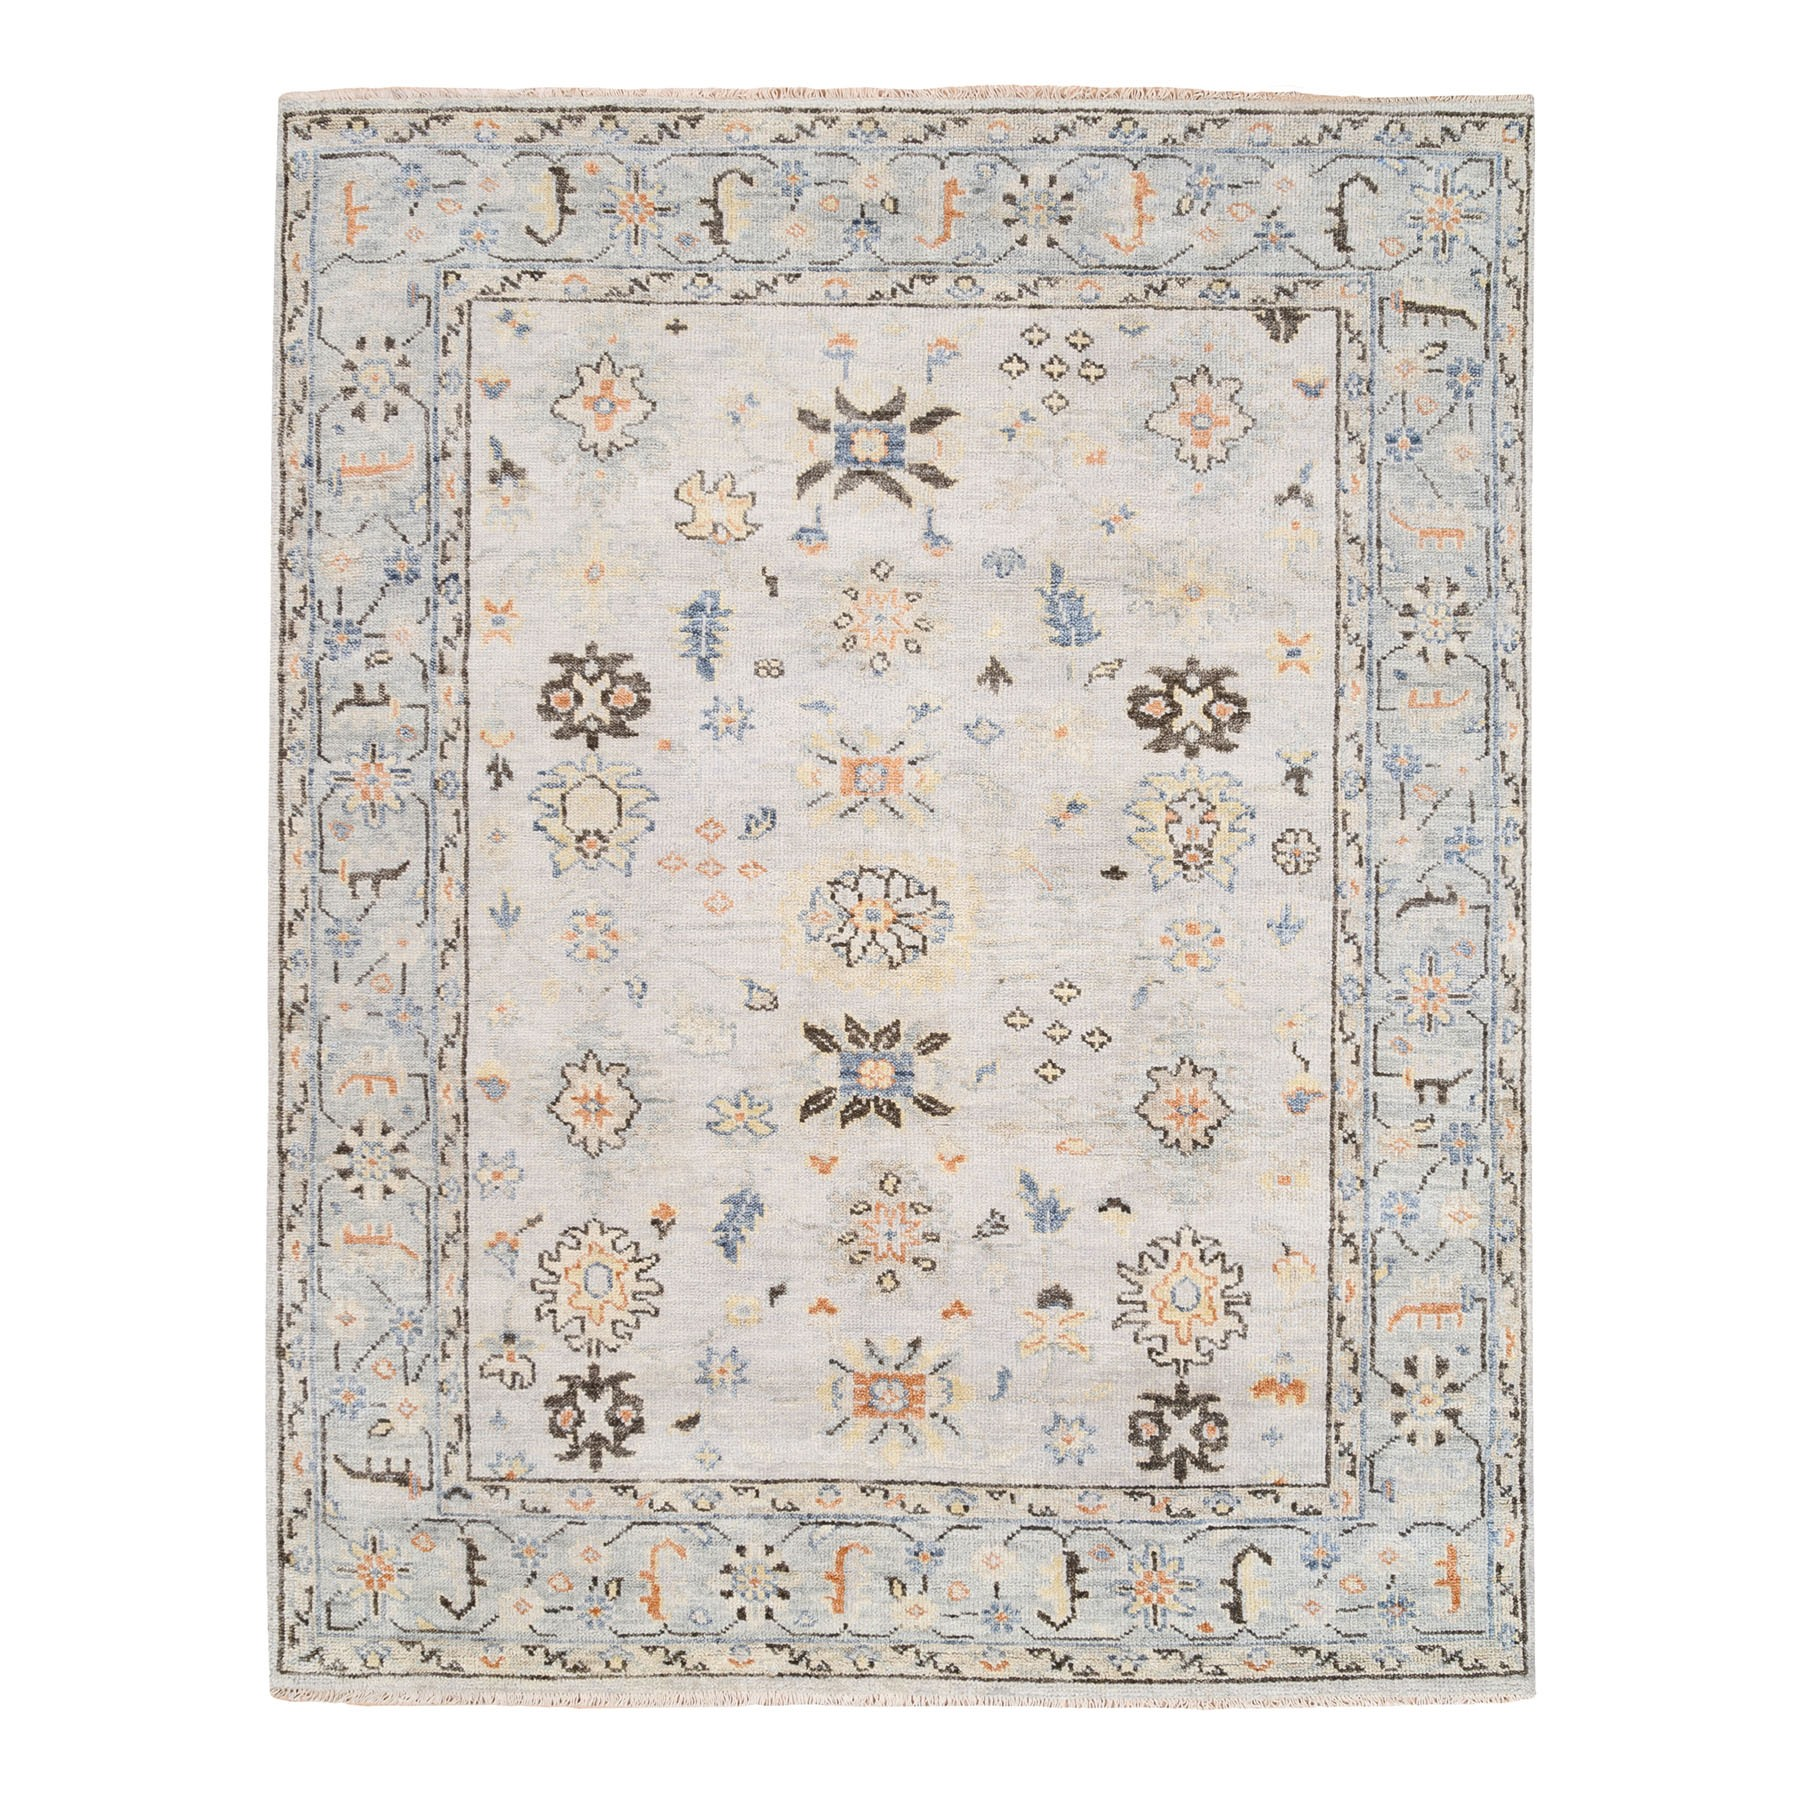 "8'2""x10' Ivory Natural Wool Supple Collection Oushak Design Hand Knotted Oriental Rug"